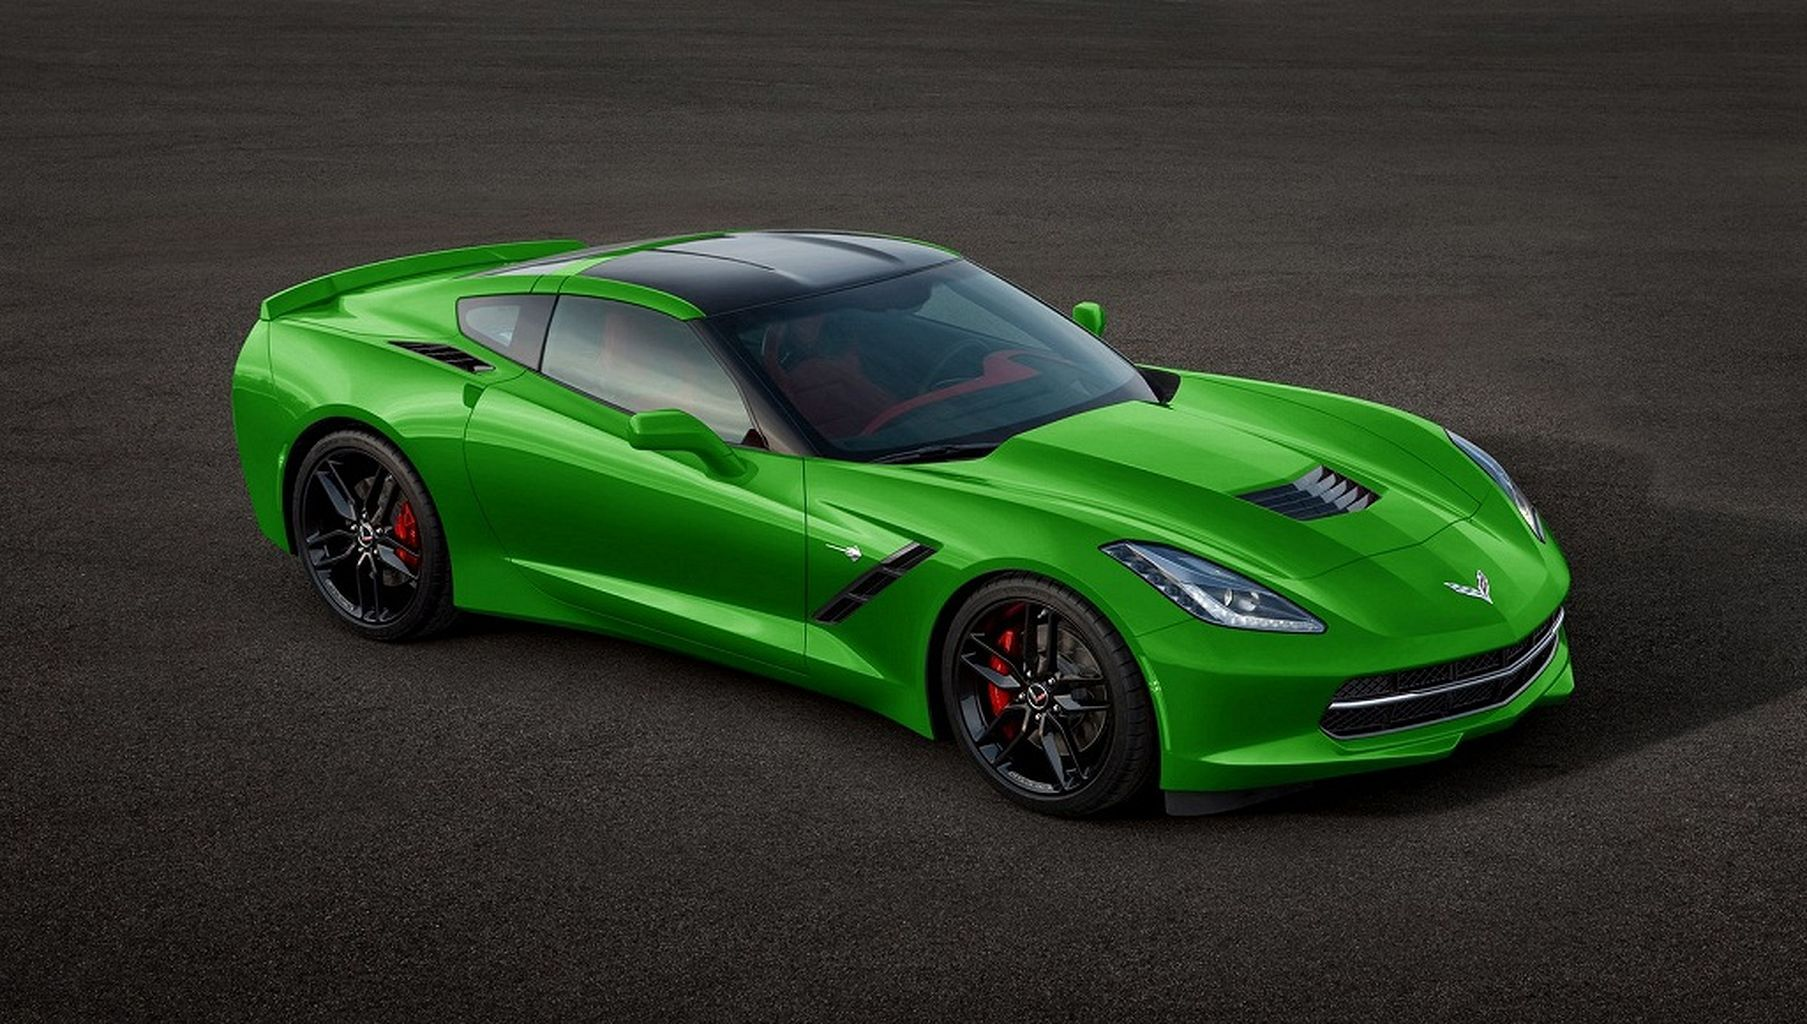 Pictures Chevy C Corvette Is So Cool For The Young Corvette - Cool young cars